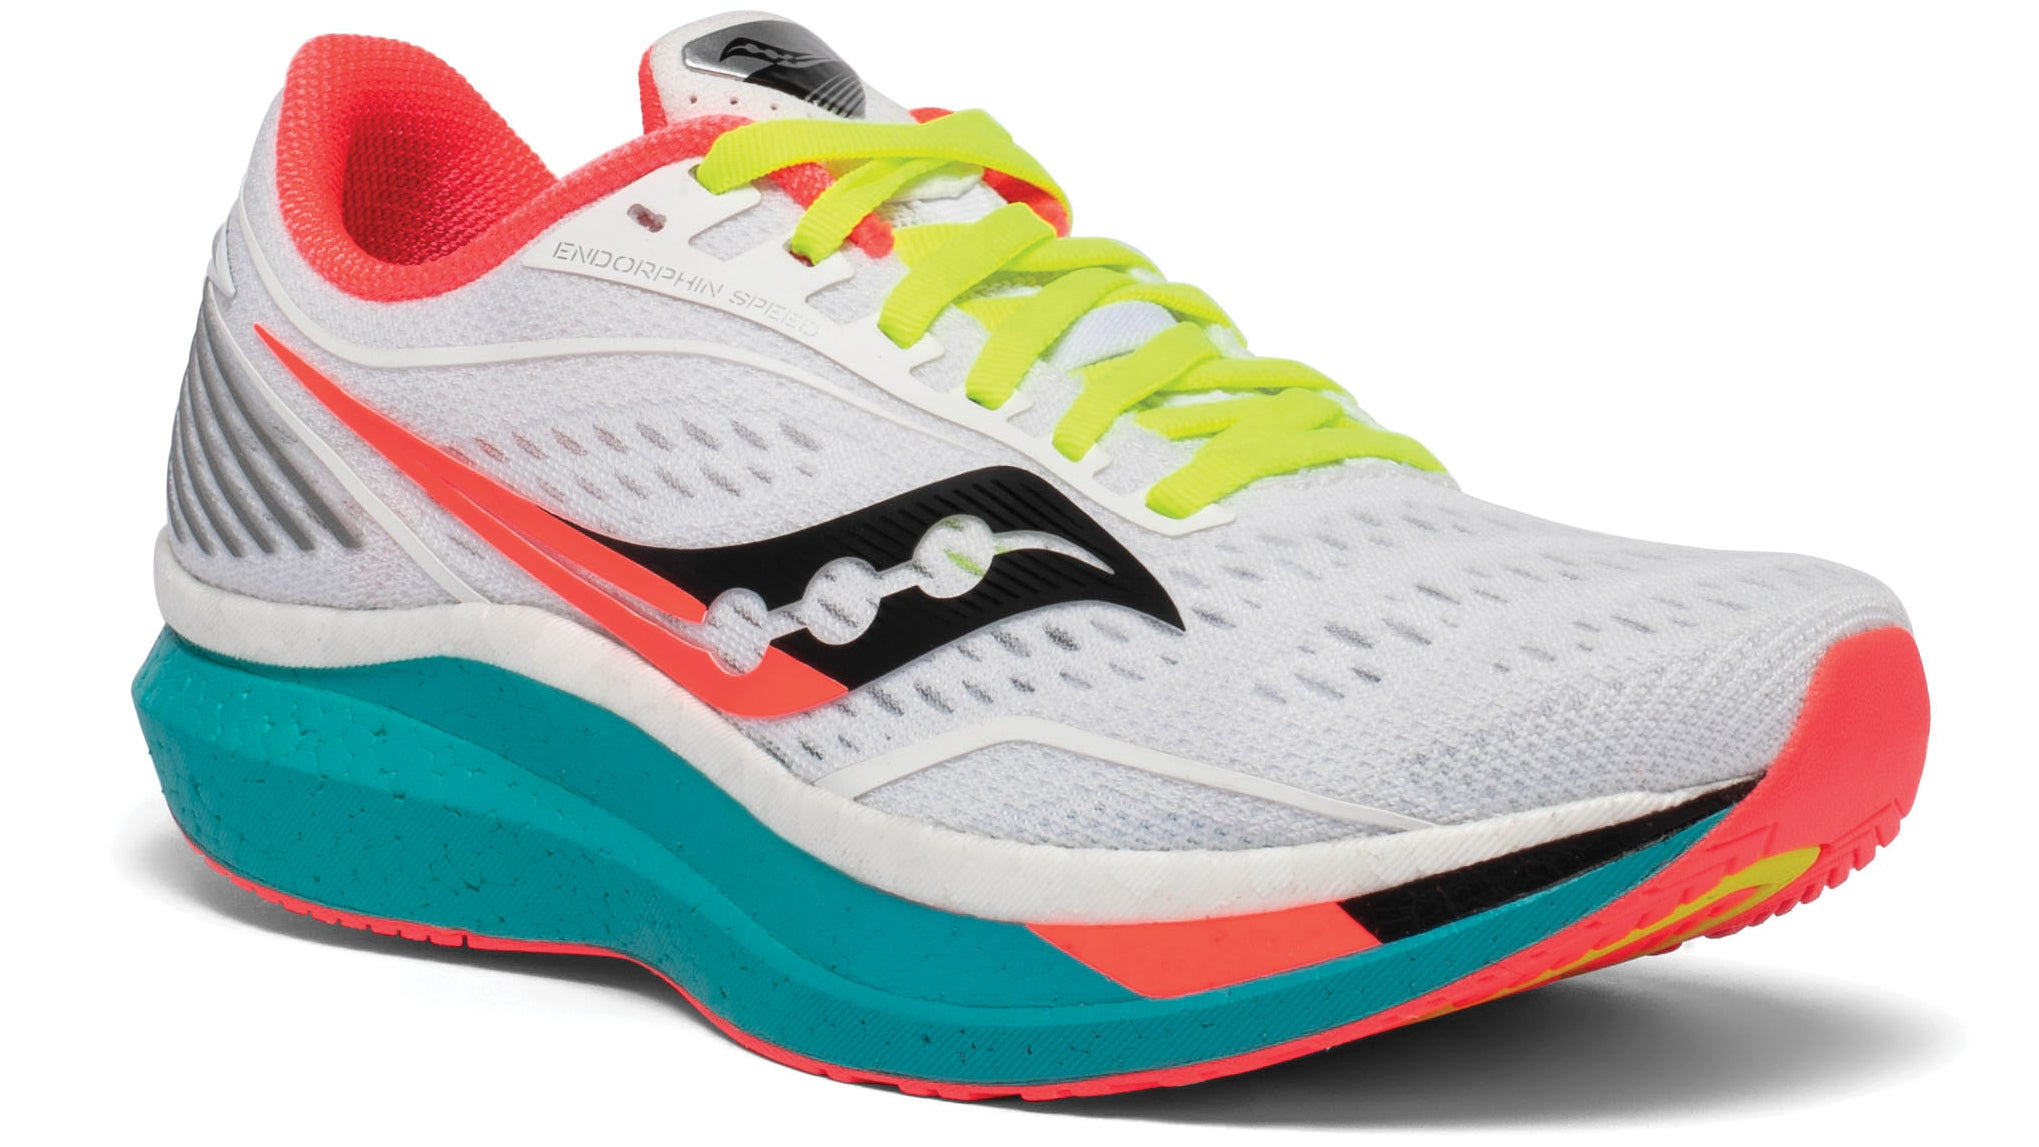 Saucony Carbon-Plated Shoes